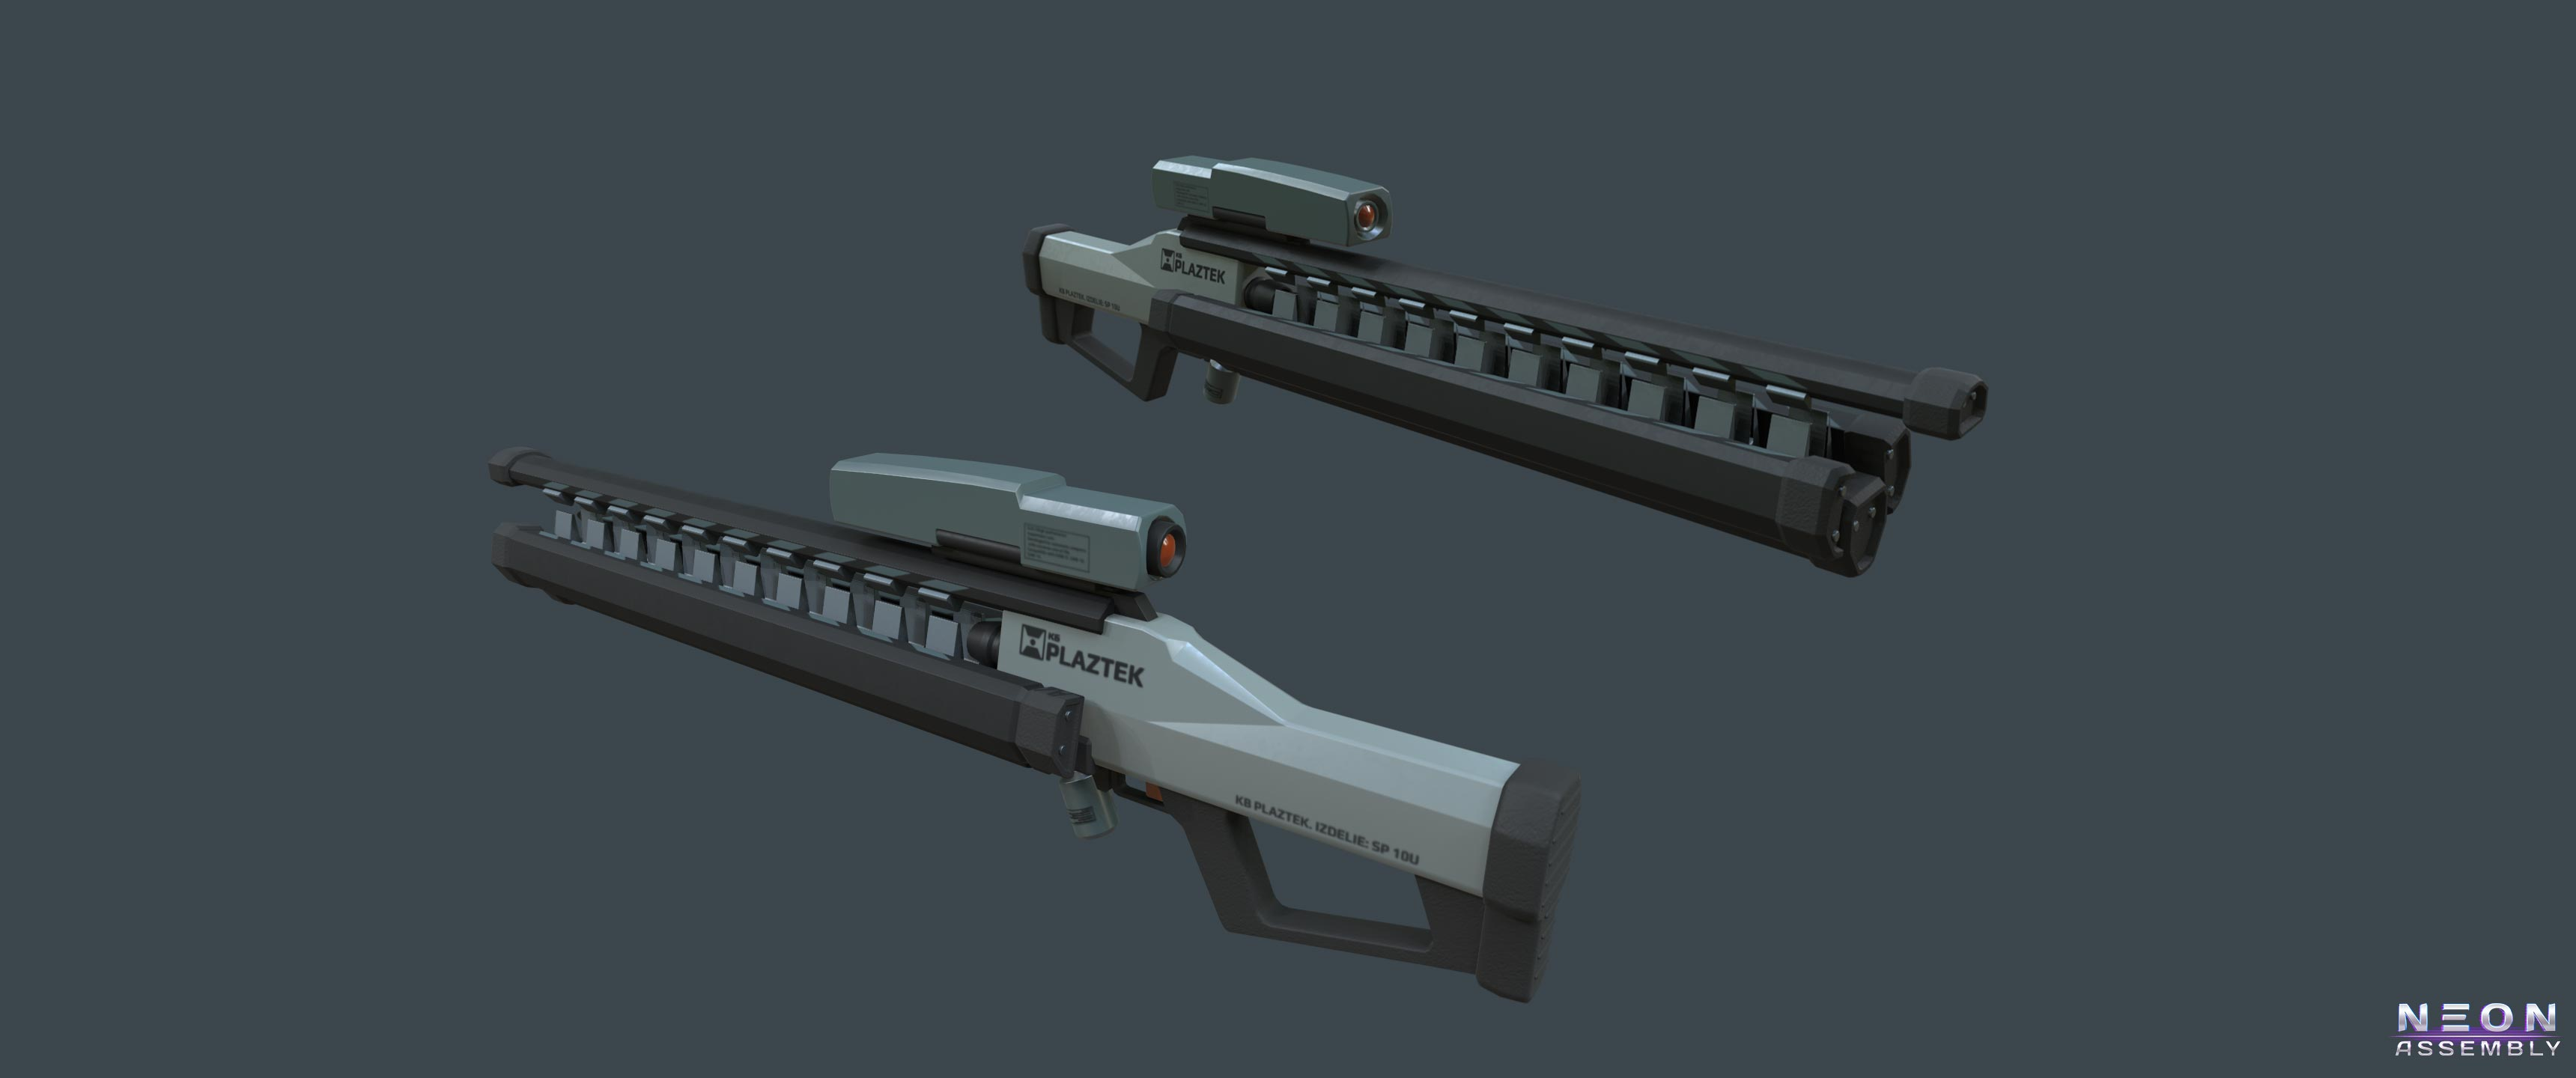 Plasma Sniper Rifle | NEON ASSEMBLY. A competetive multiplayer turn based tactics game.